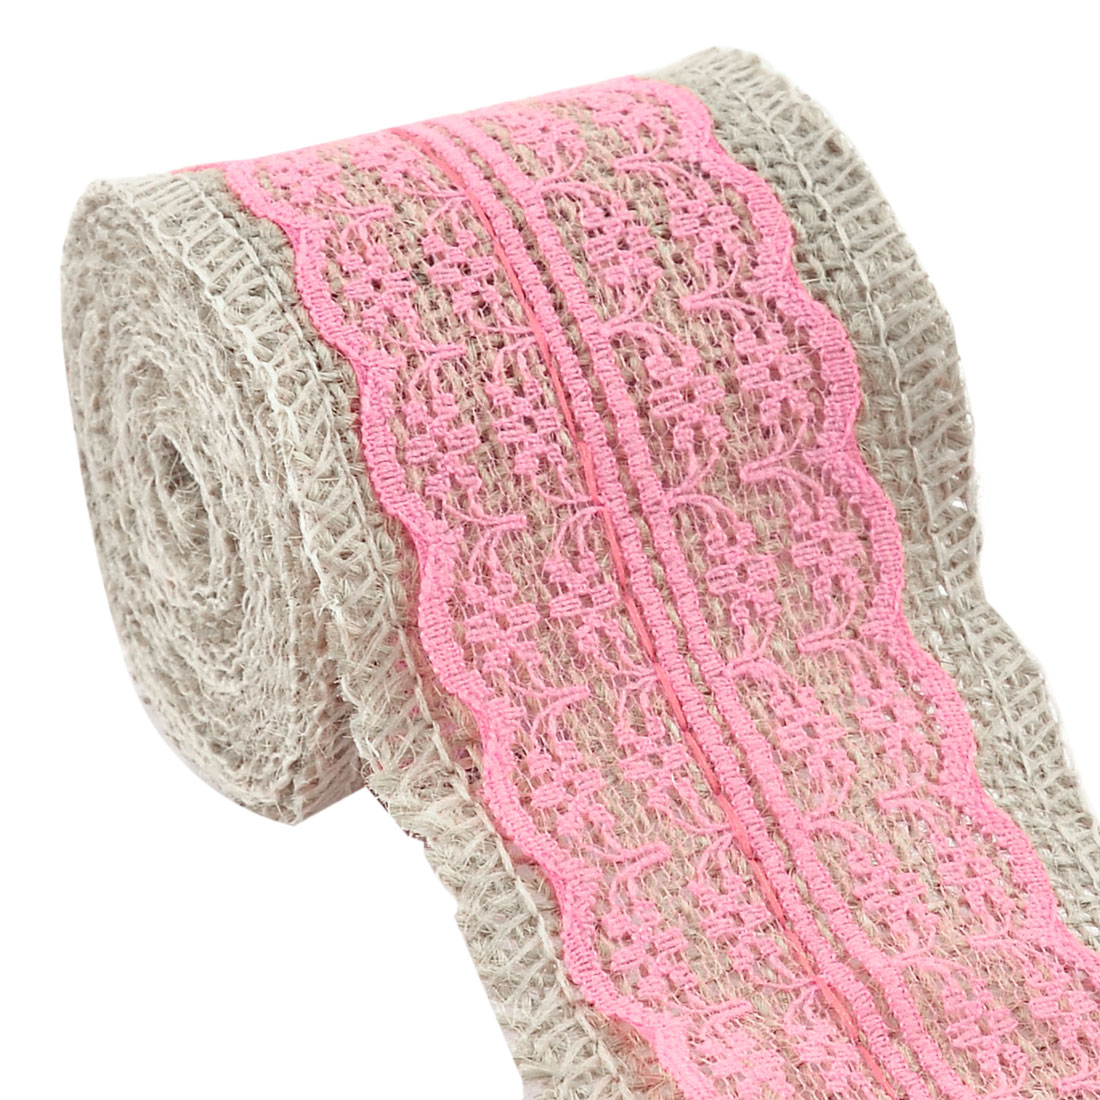 Burlap Strap Art Crafts Lace Ribbon Roll Trim Edge Pink 2.2 Yards for Wedding